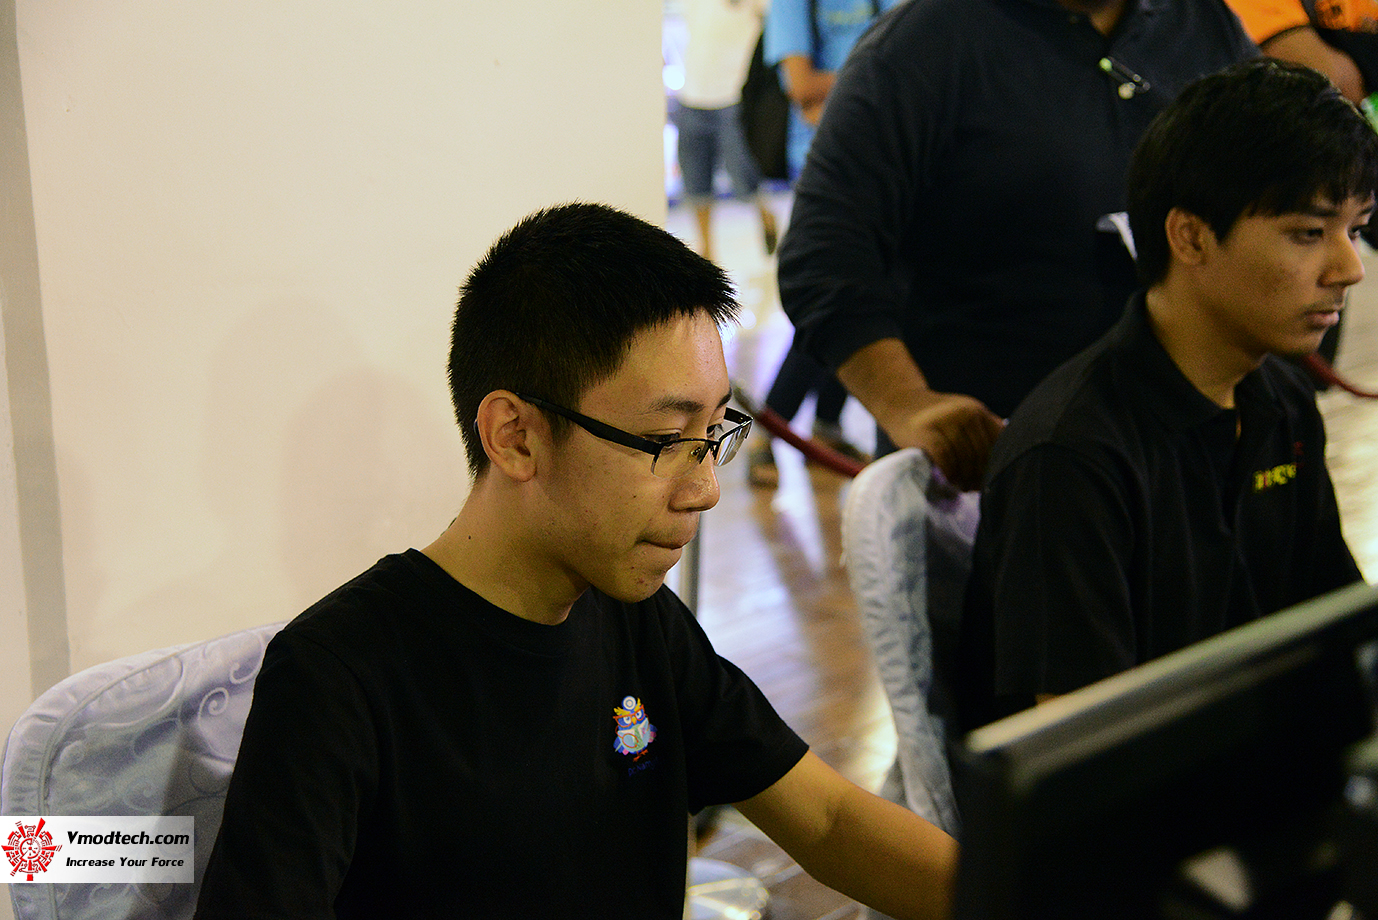 dsc 6997 AMD OMG! Party 2015 (AMD Overclock Modding Gaming Party 2015)